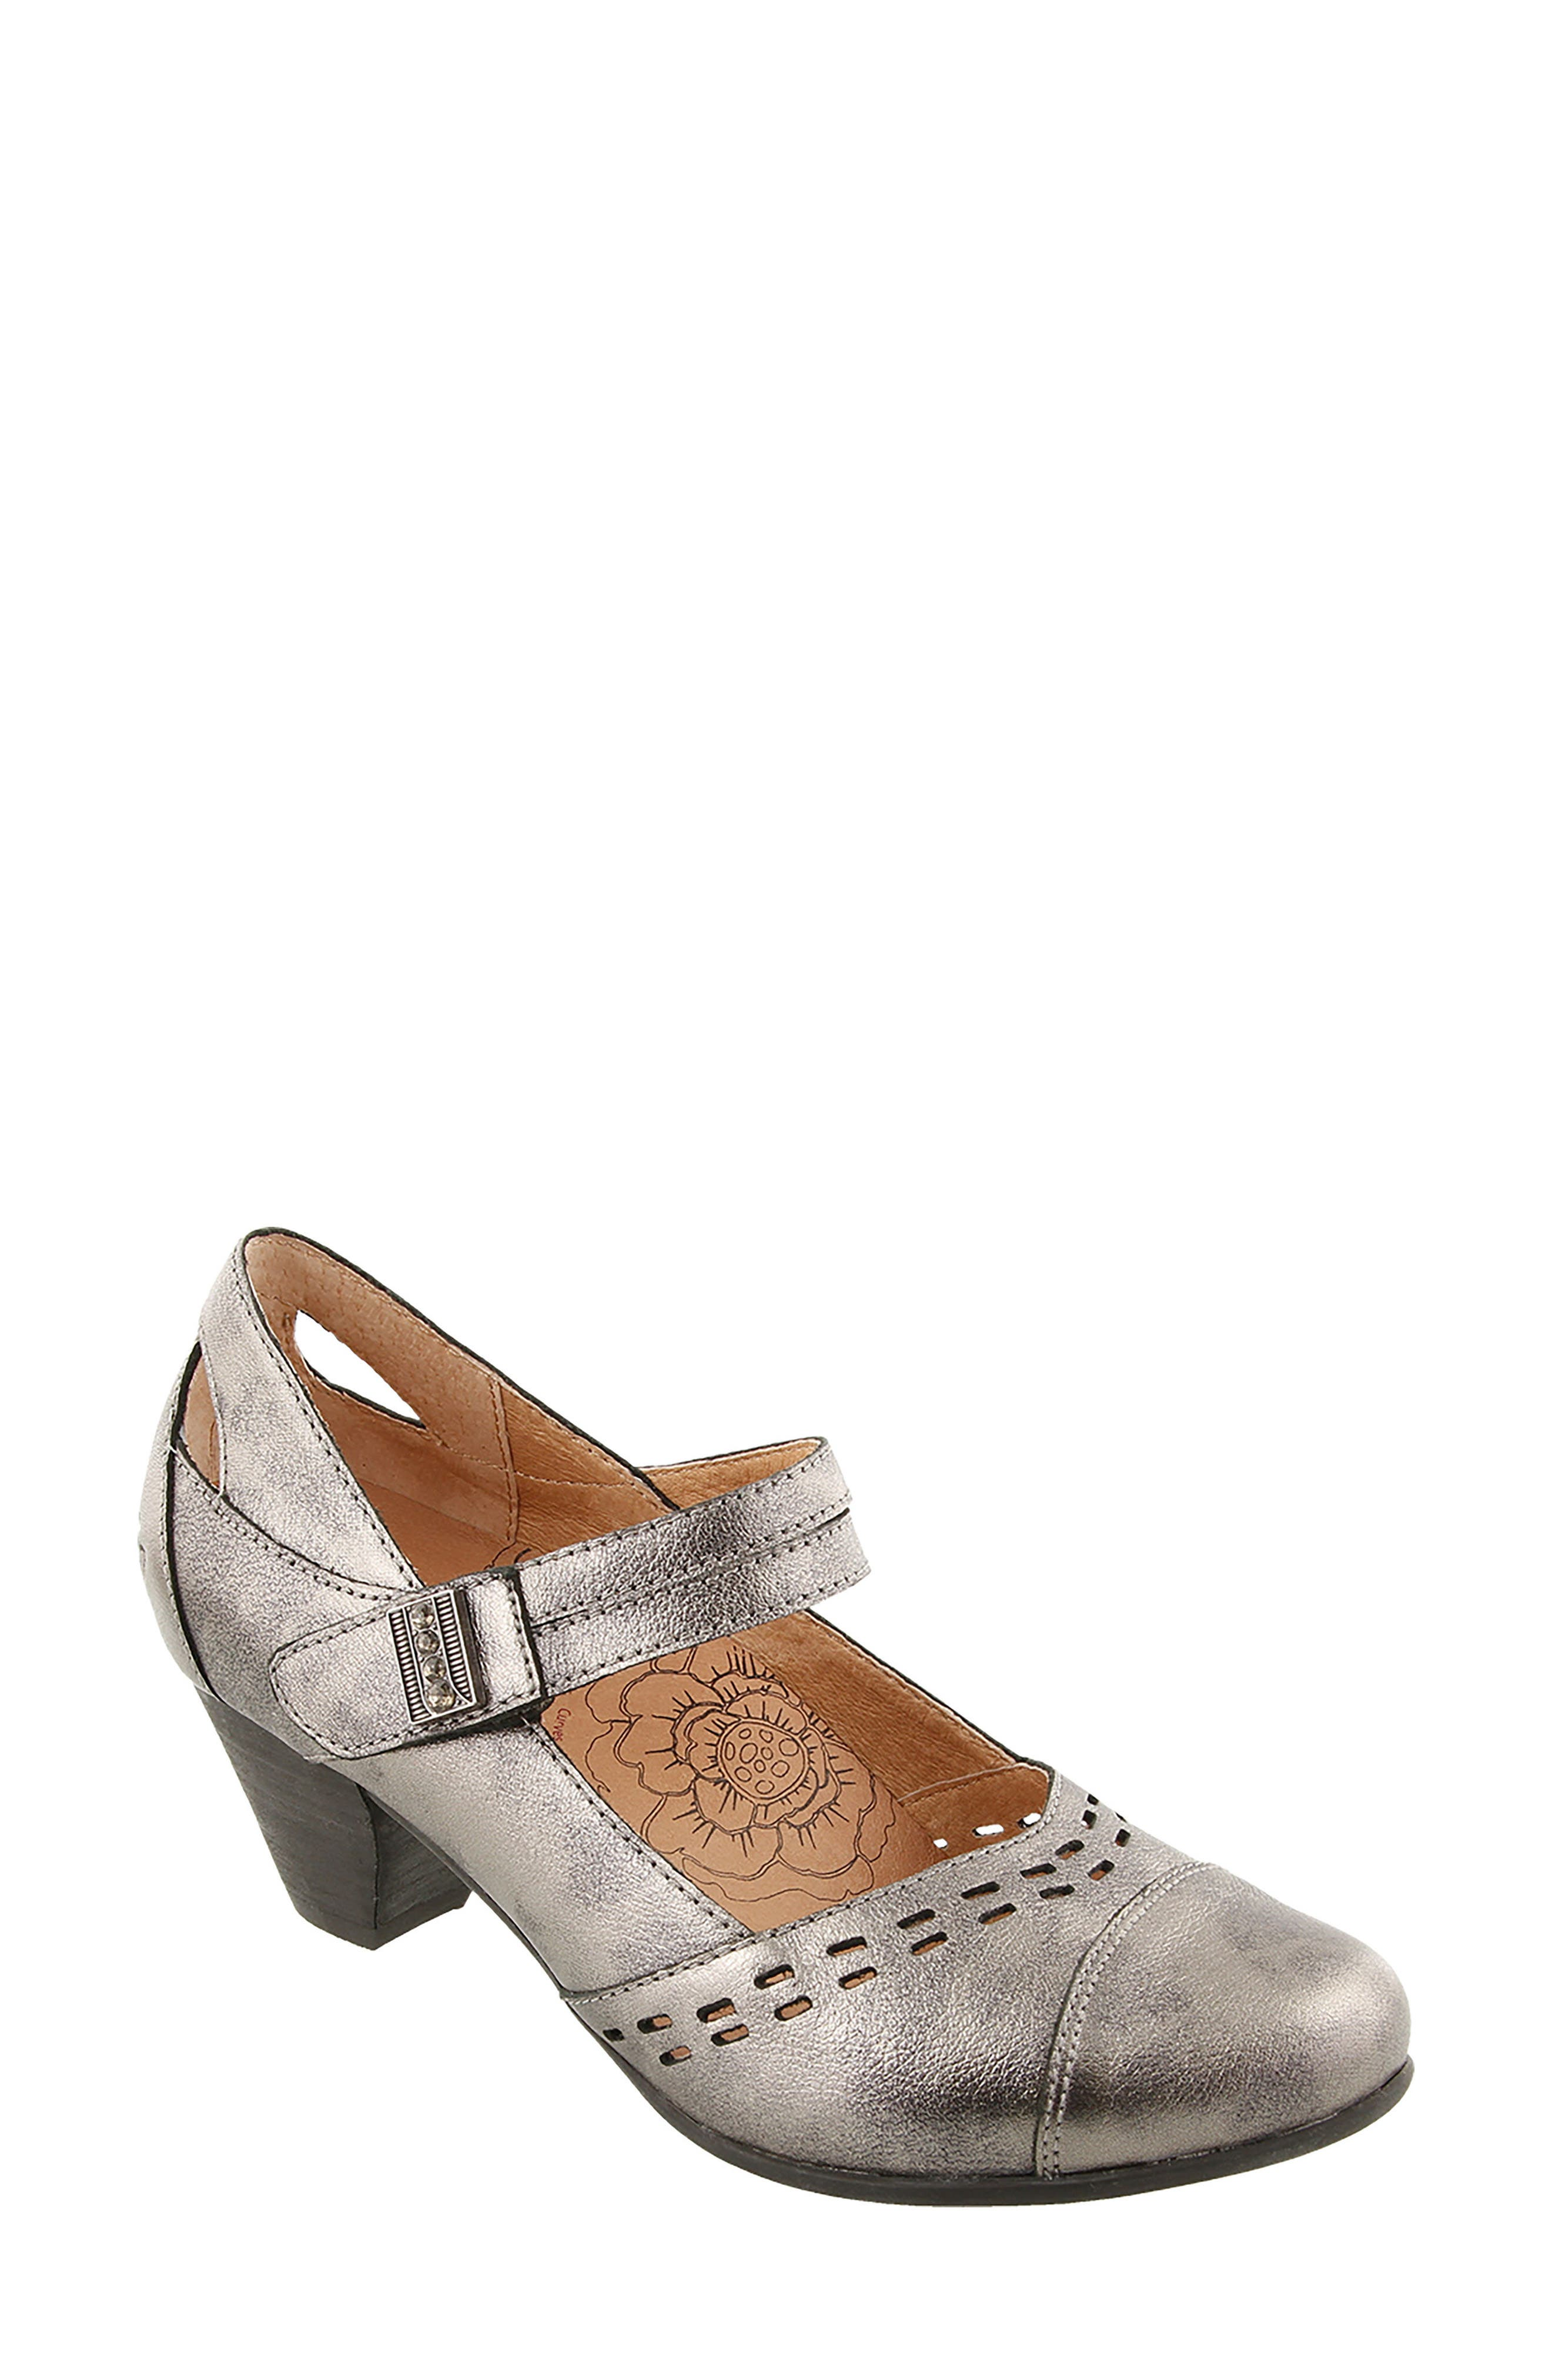 Stunner Laser Cutout Mary Jane Pump,                             Main thumbnail 1, color,                             Pewter Leather